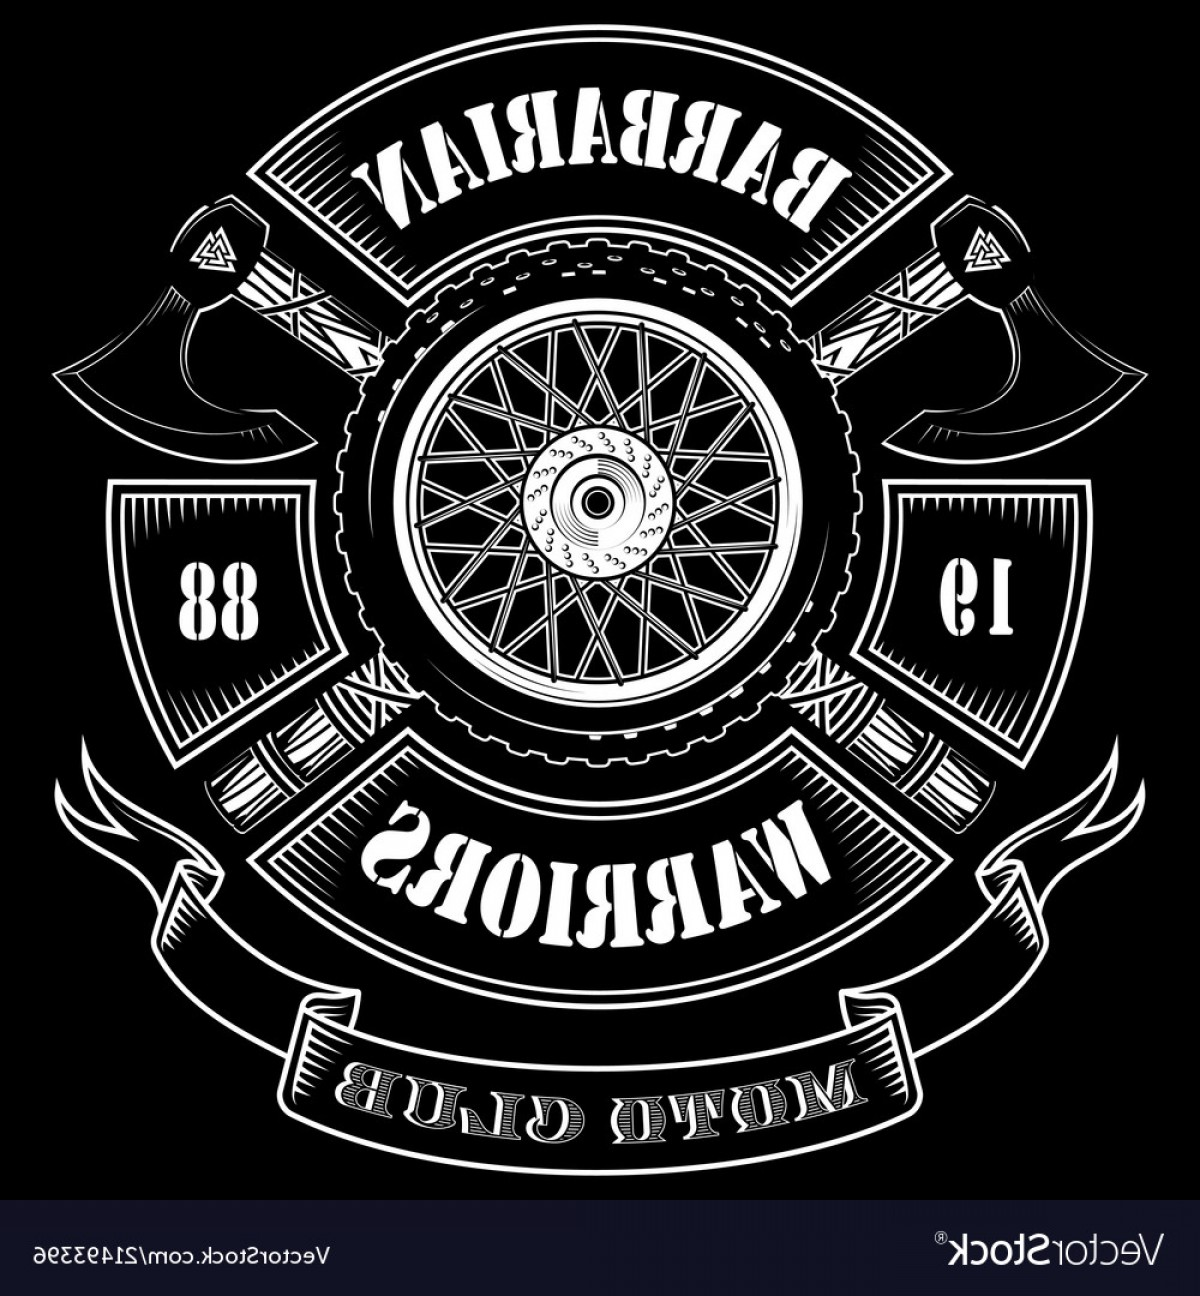 Motorcycle Club Vector: Emblem Of The Motorcycle Club Motorcycle Wheel Vector